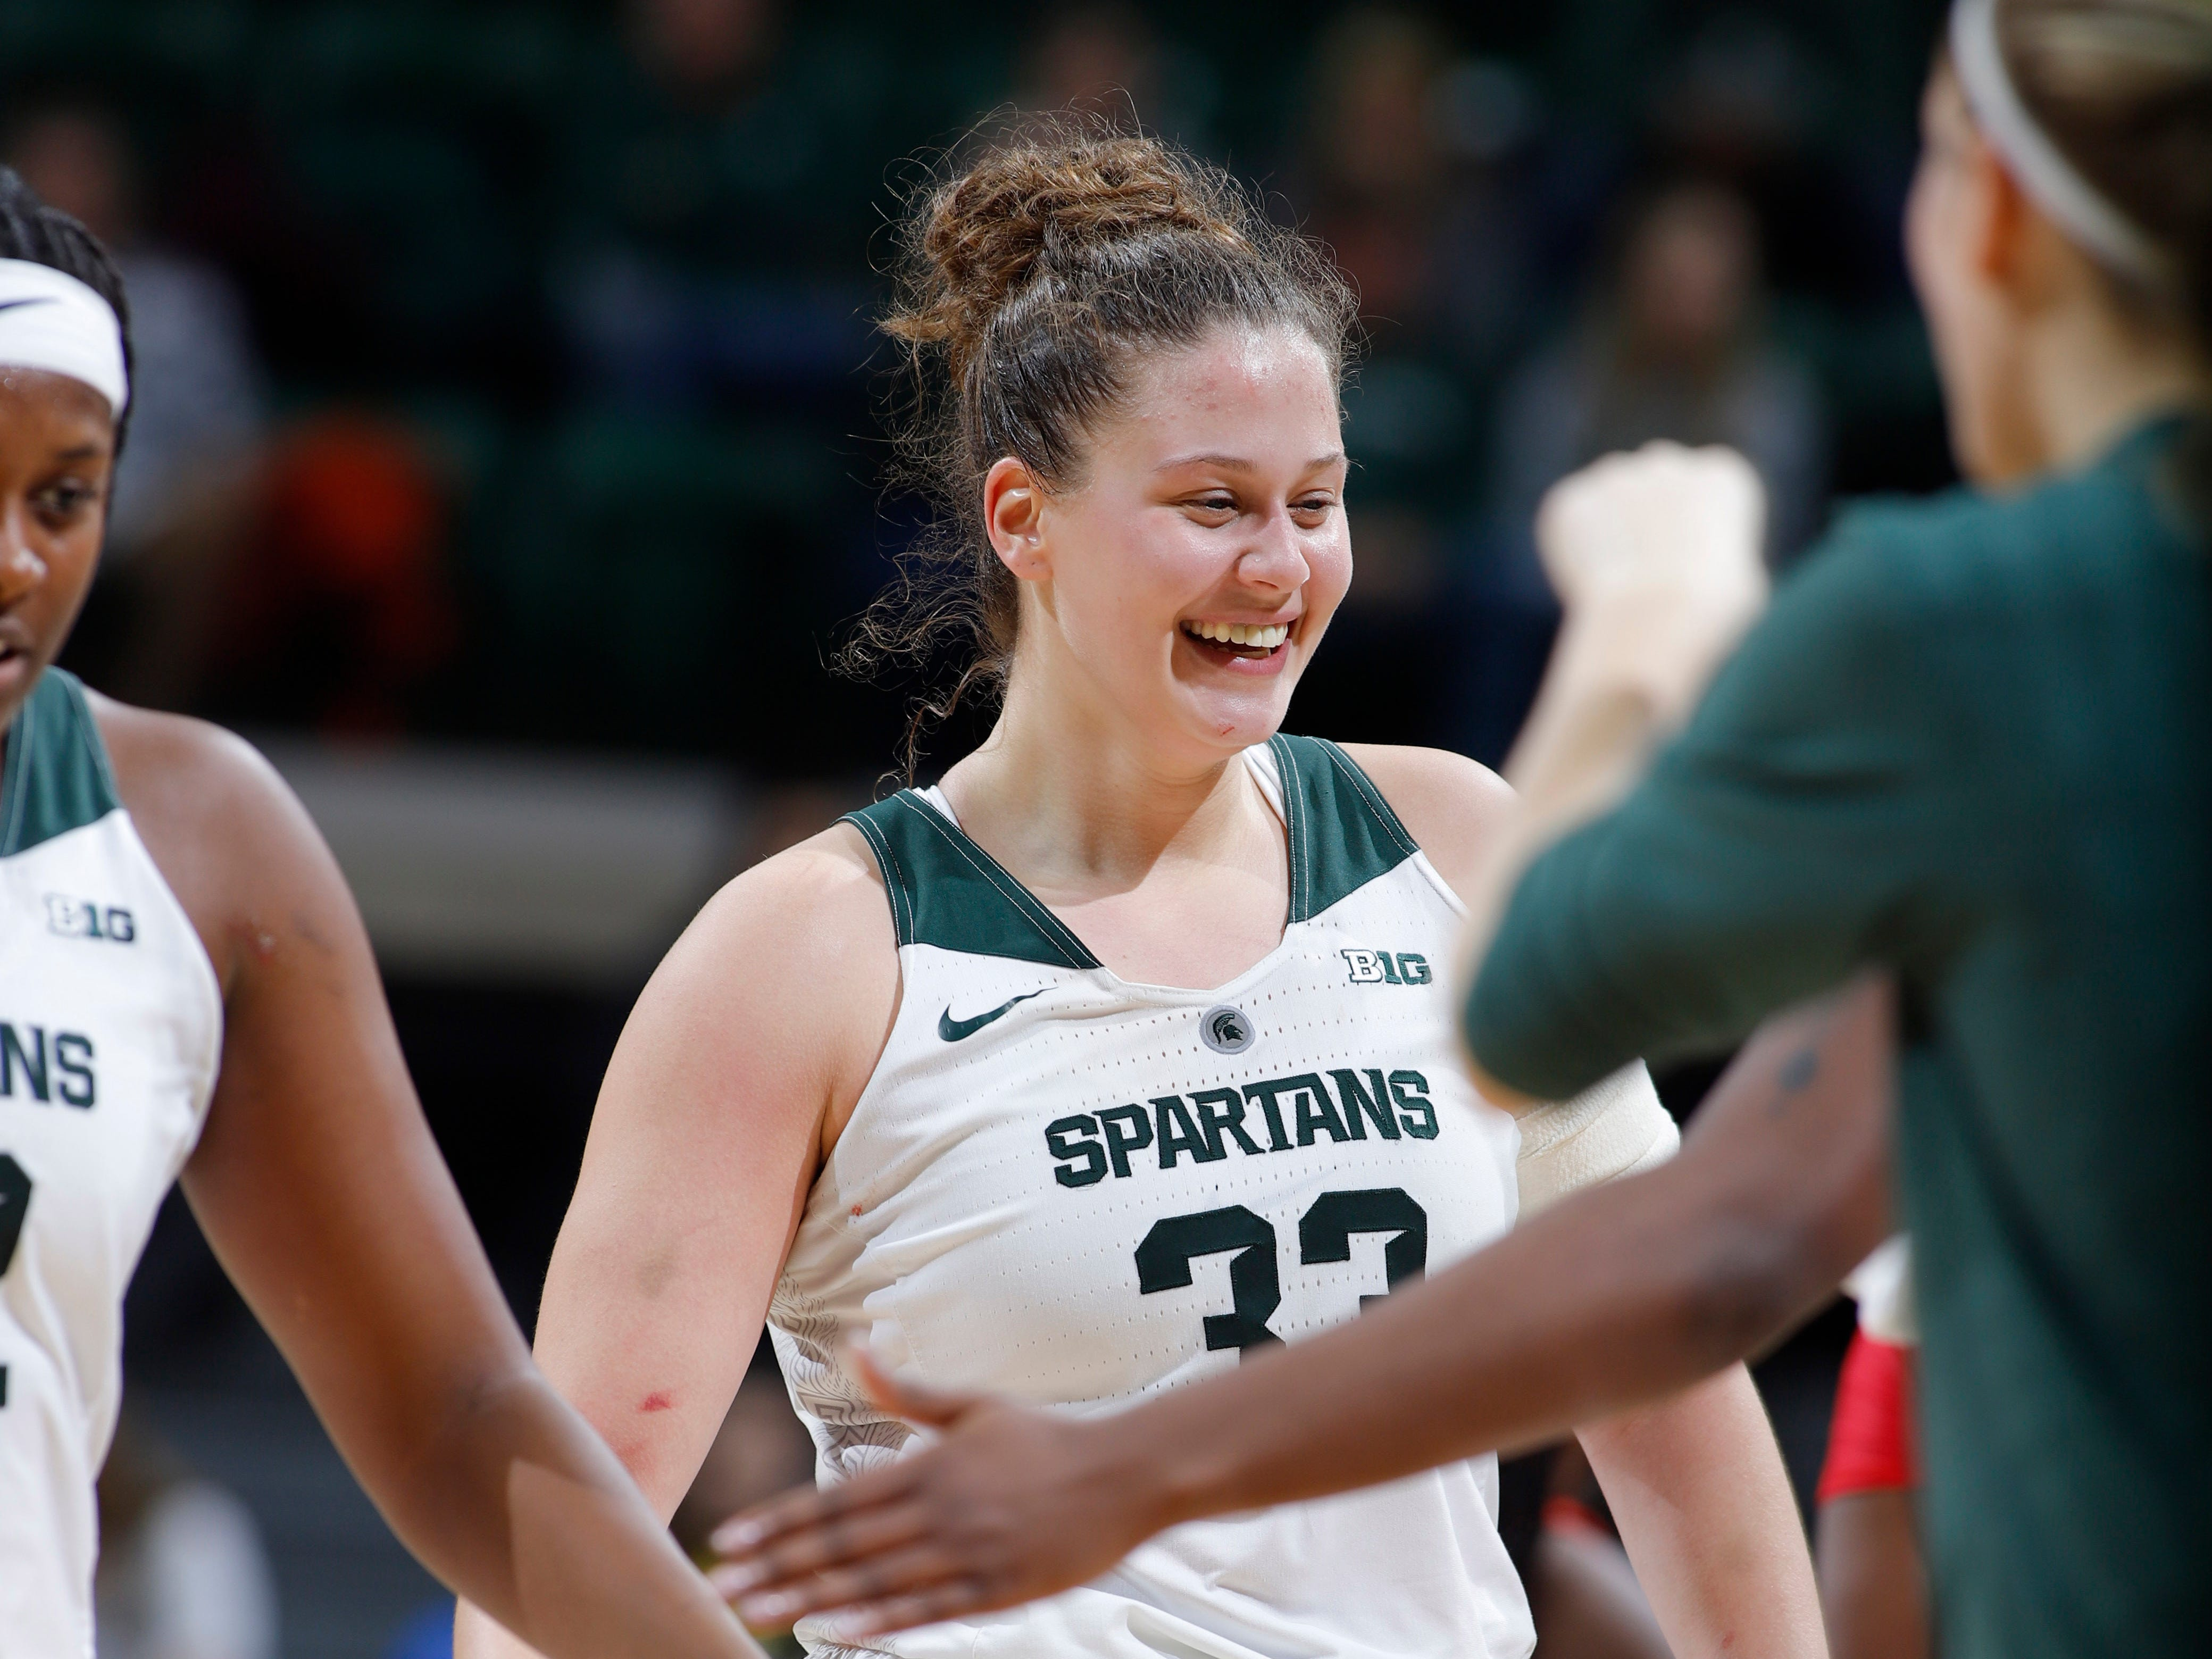 Michigan State's Jenna Allen celebrates with teammates against Maryland, Thursday, Jan. 17, 2019, in East Lansing, Mich.